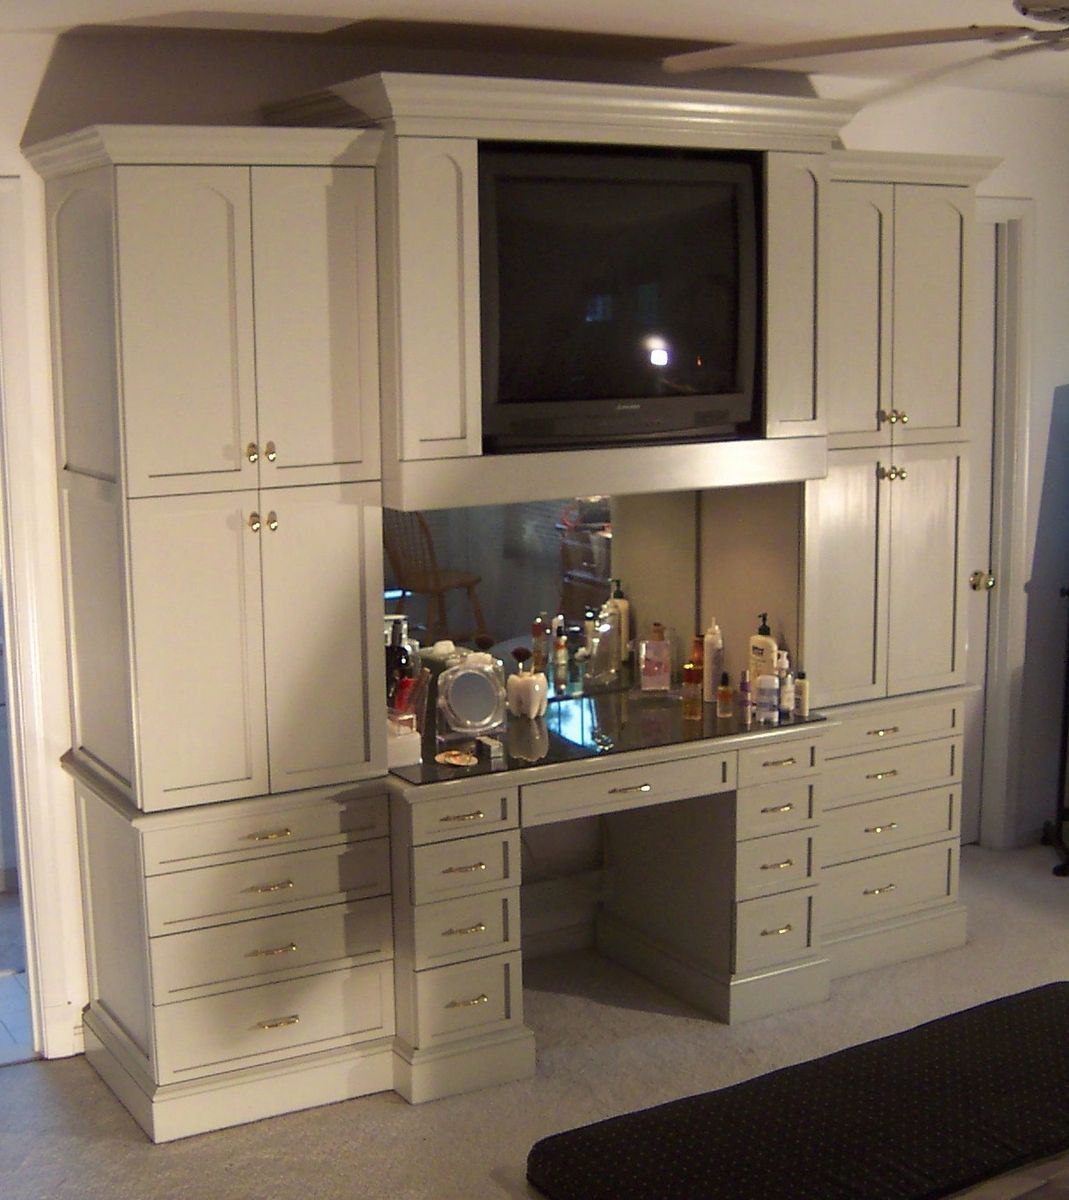 Bathroom Mirrors With Tv Built In Bedroom Cabinet And Makeup Table Built In I Want Sans Tv